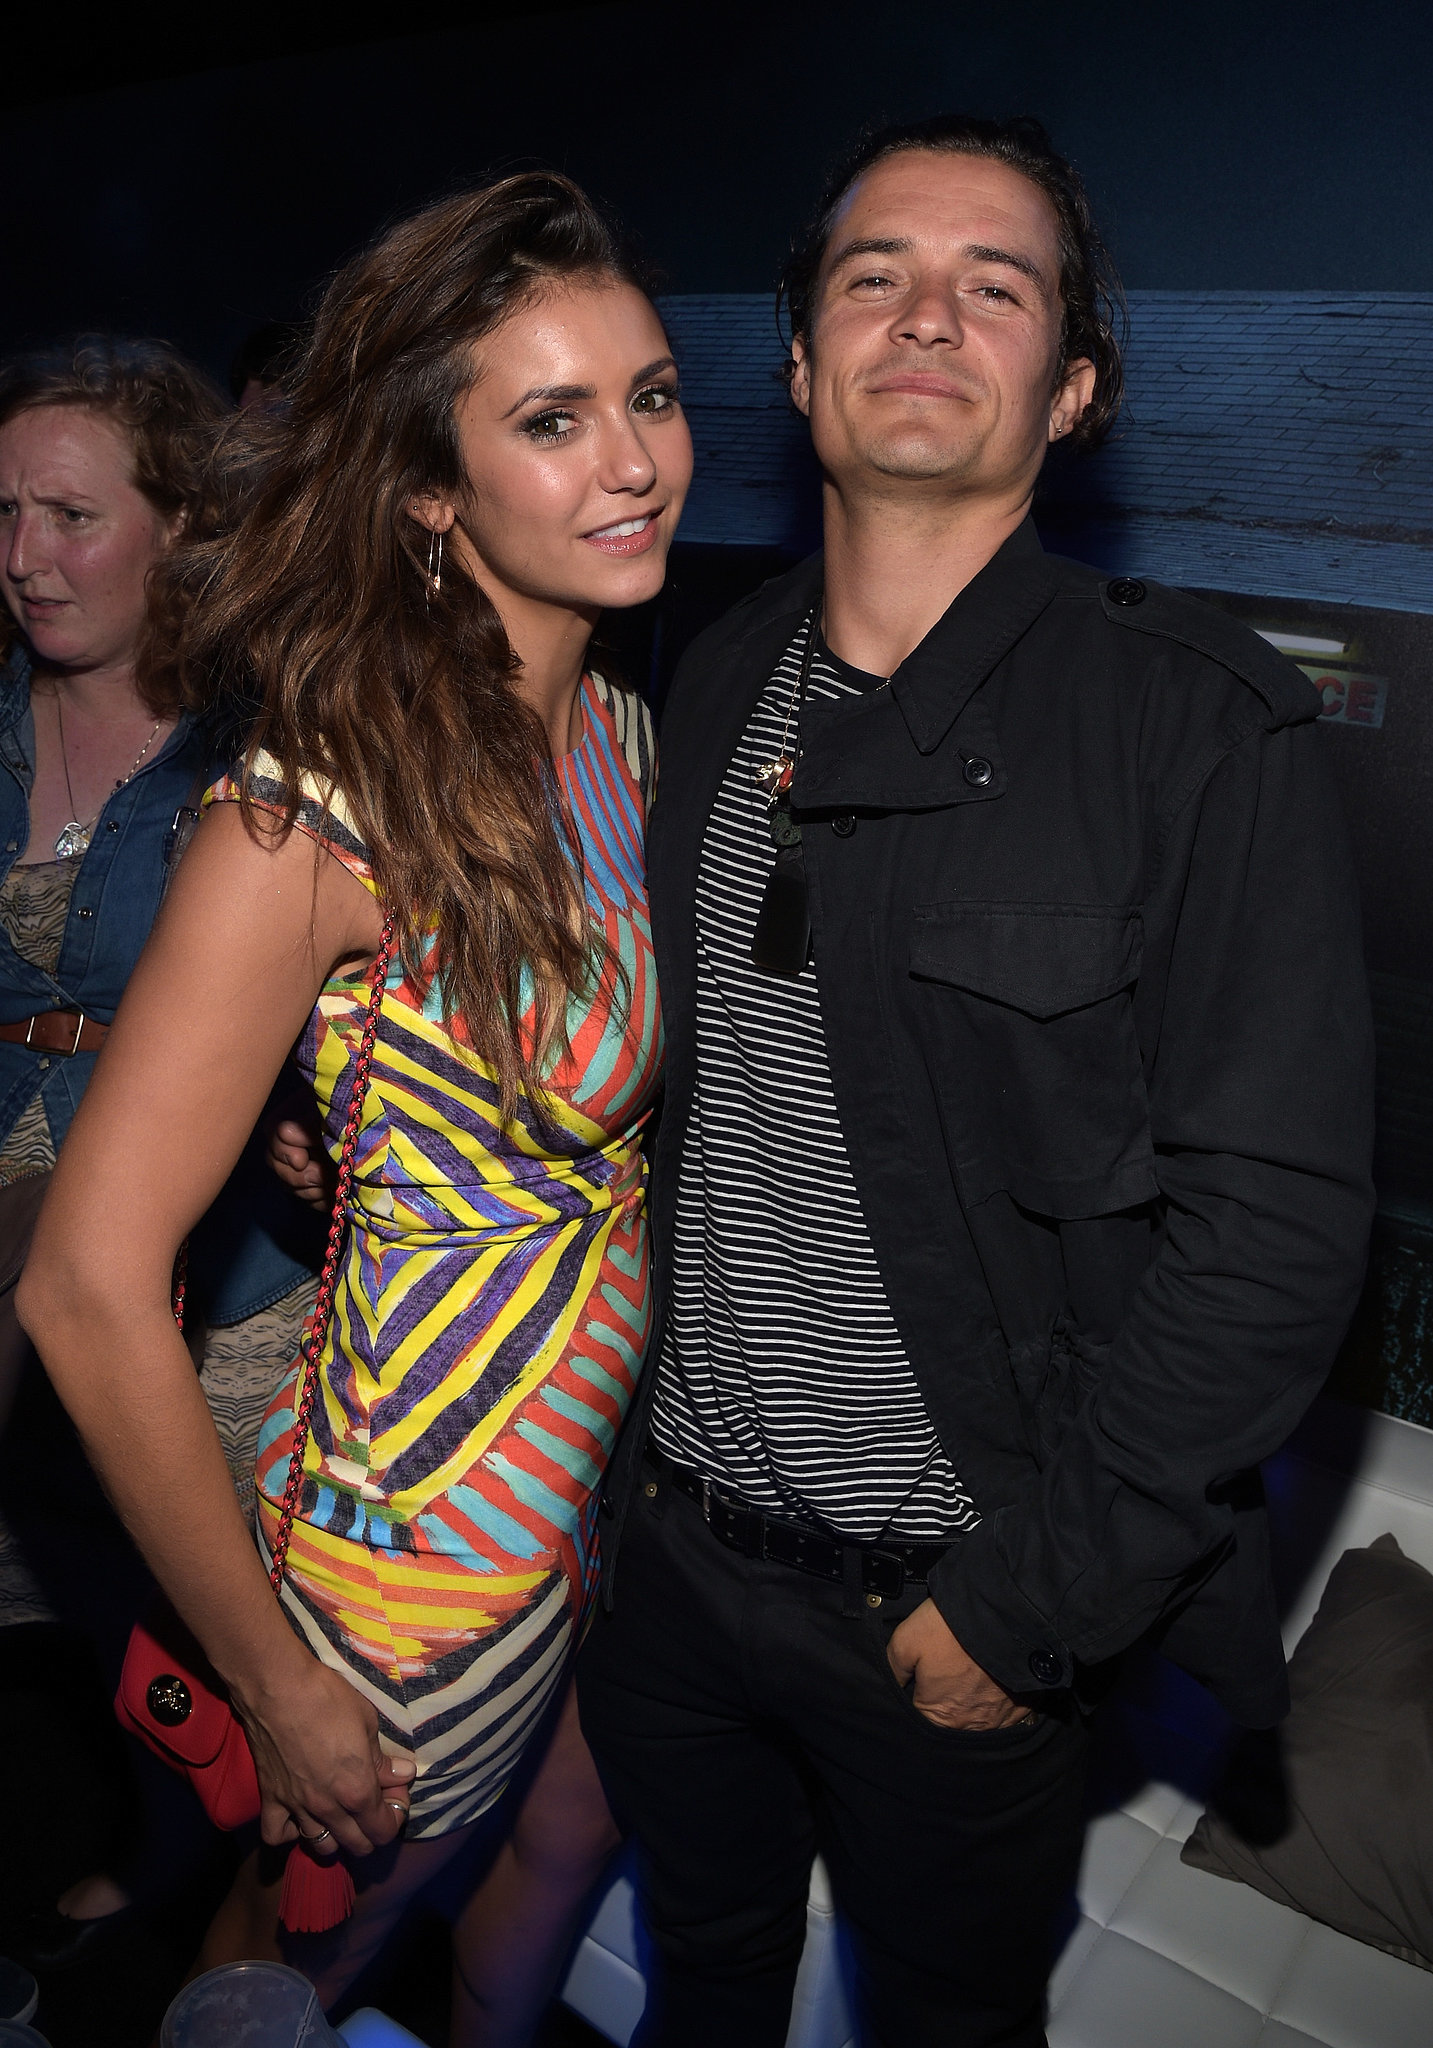 Nina reportedly made out with Orlando Bloom for 20 minutes at Comic-Con.